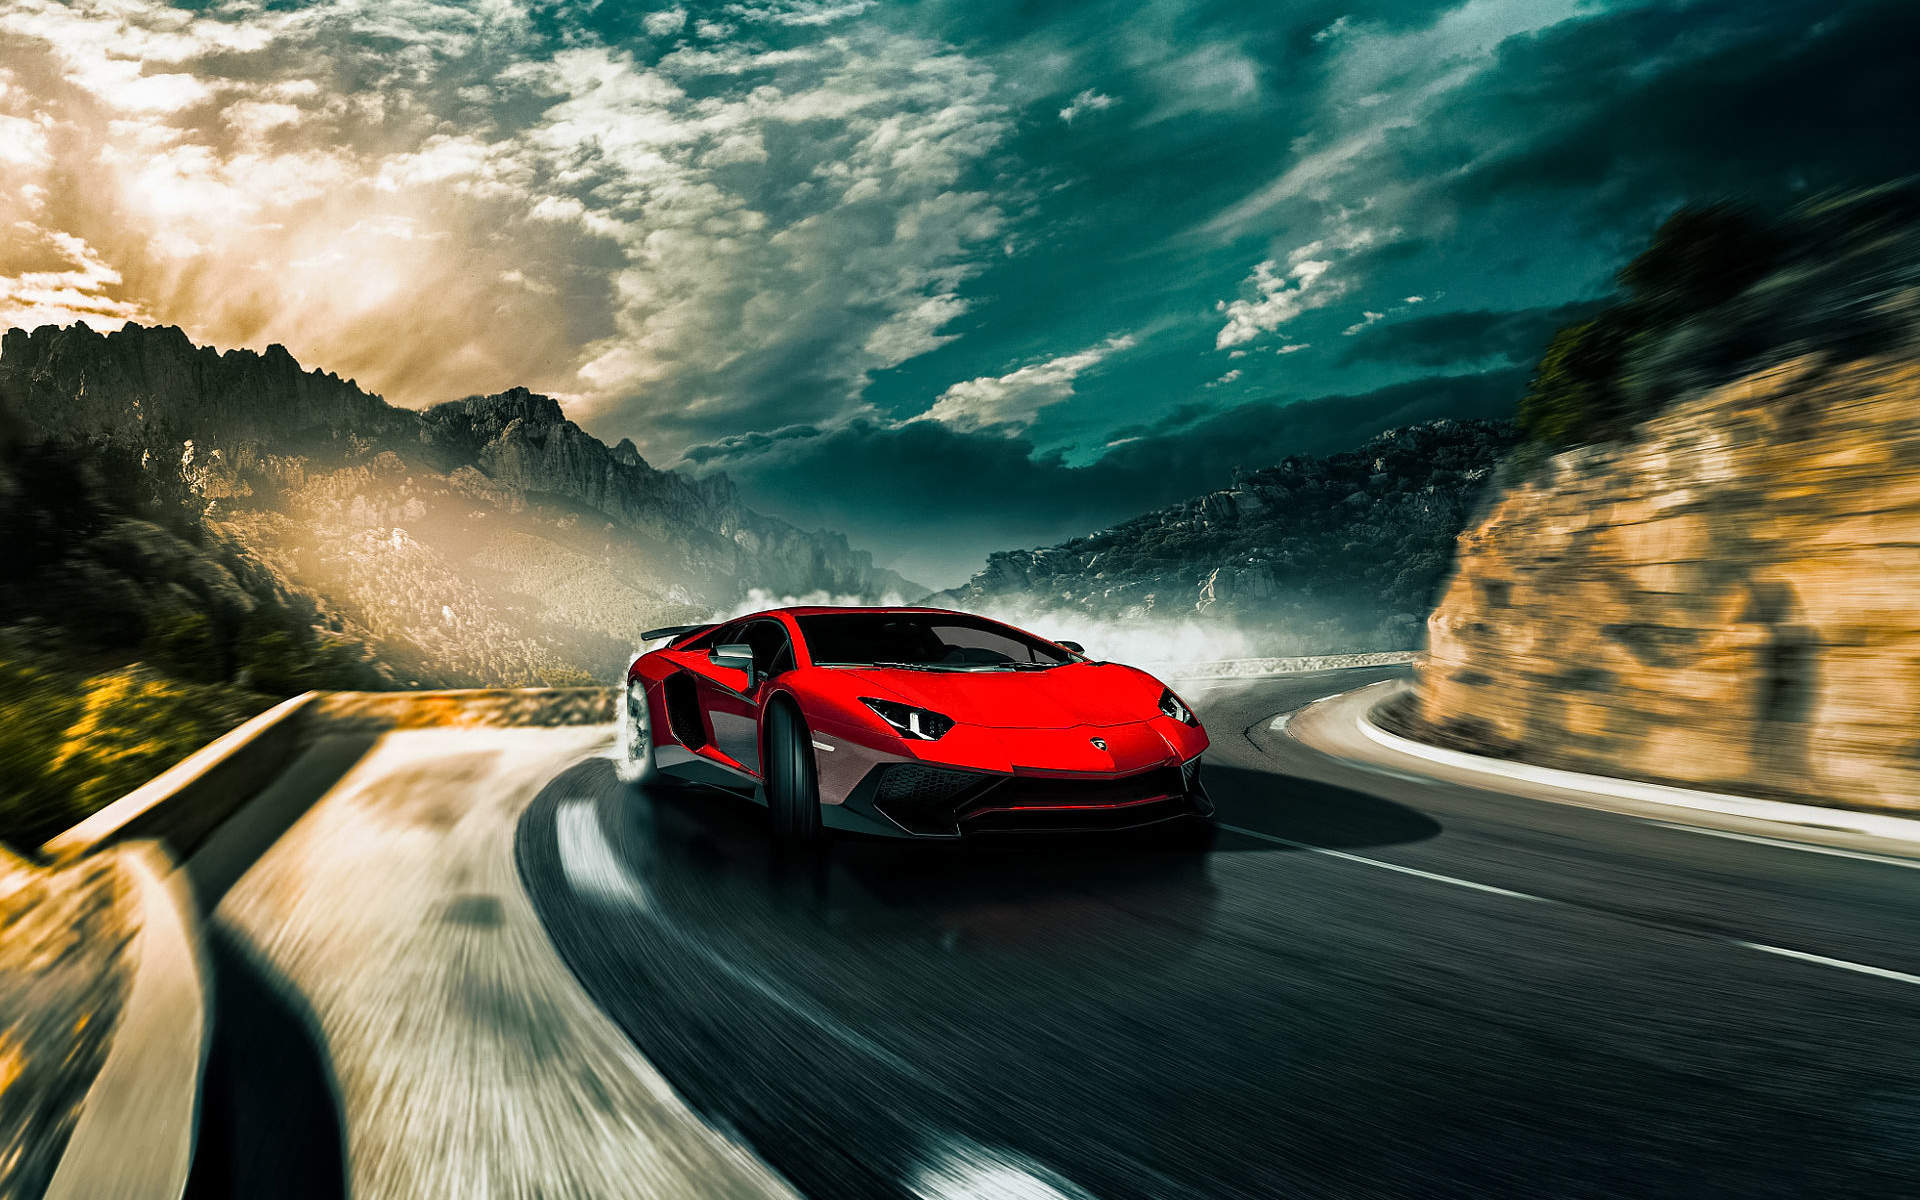 Red Lamborghini Aventador Car Wallpaper 66275 1920x1200px